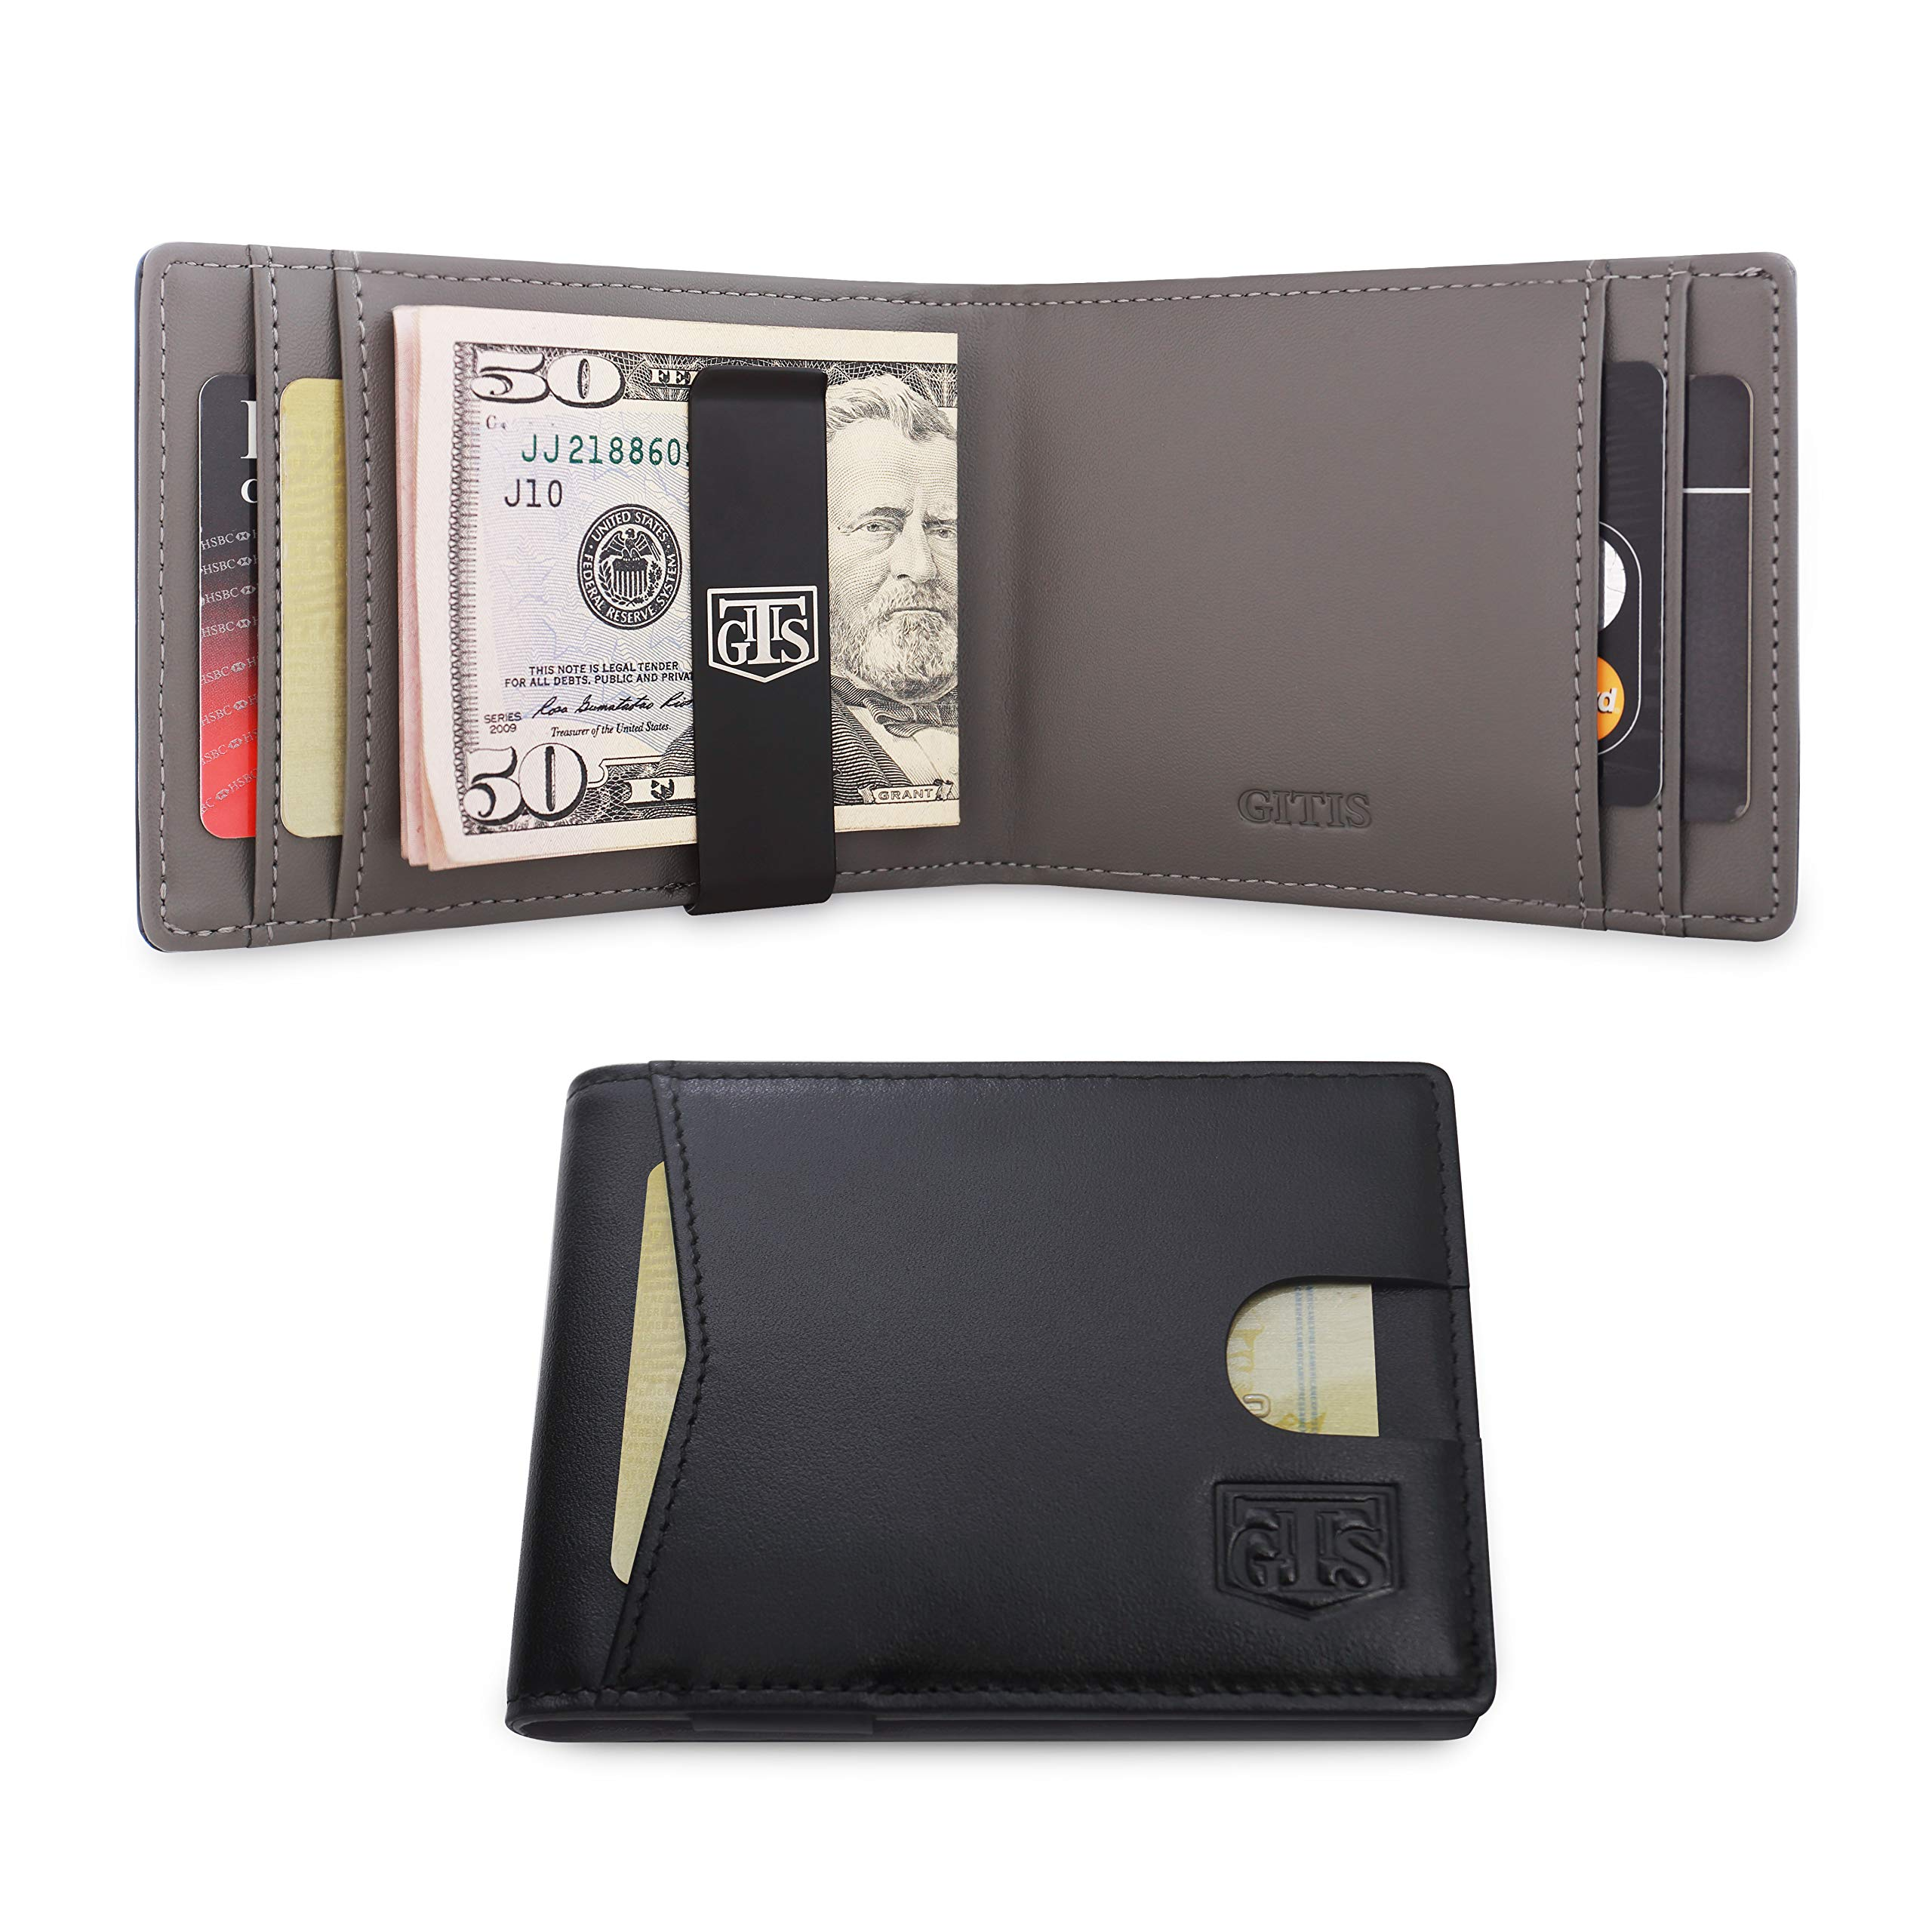 Slim Wallets for Men - GITIS - Bifold Genuine Leather RFID Blocking Wallet for Men with Money Clip & Gift Box (Black)